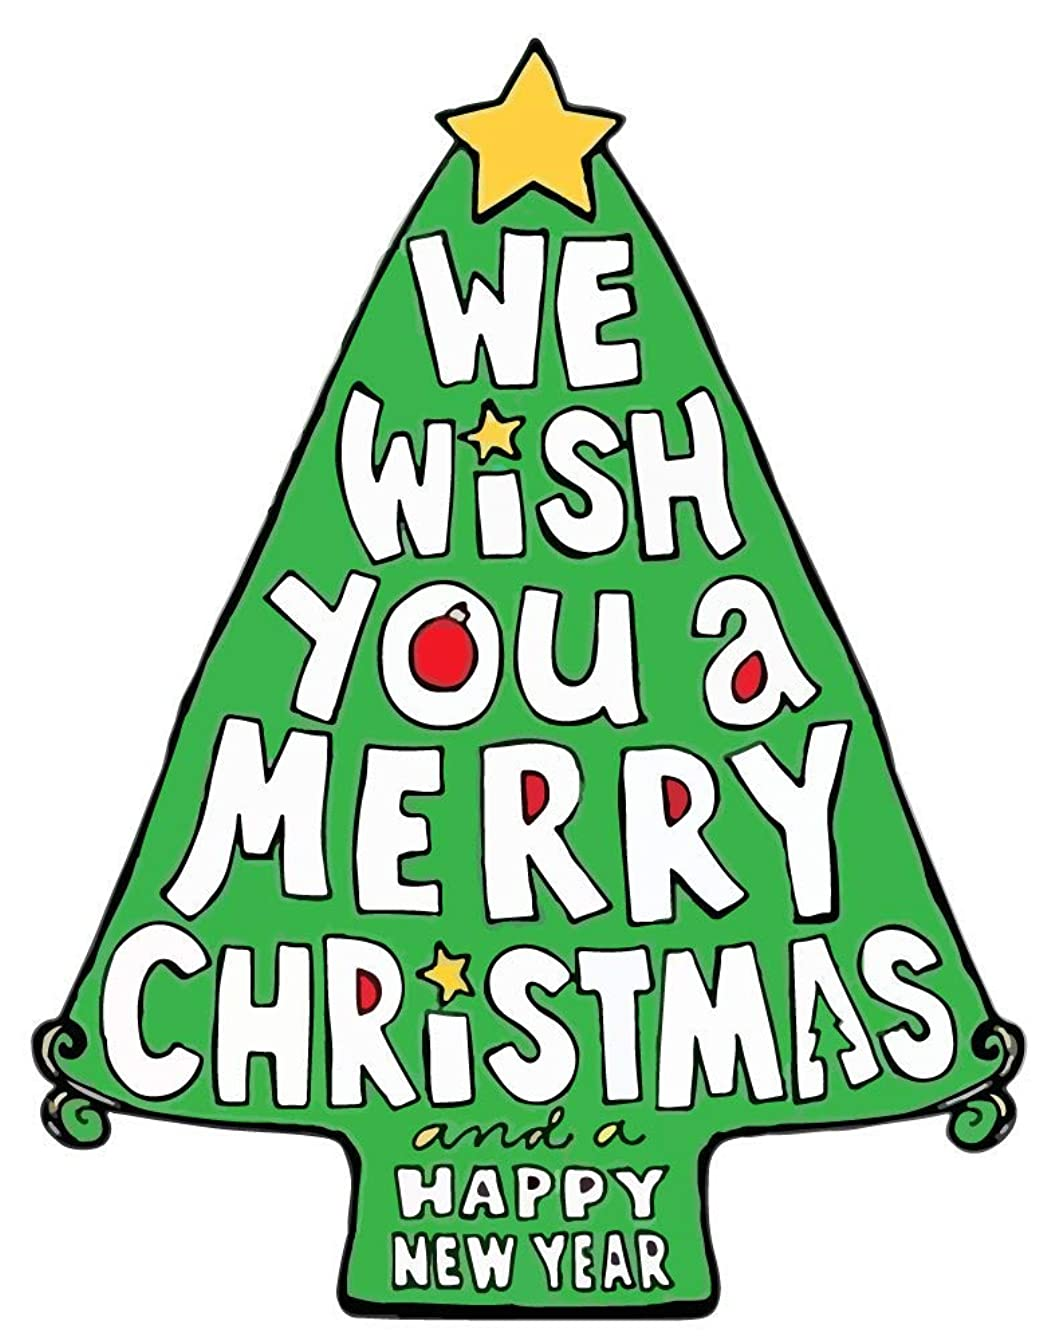 Wish You a Merry Christmas Happy New Year Tree Shape Magnet 10 1/2